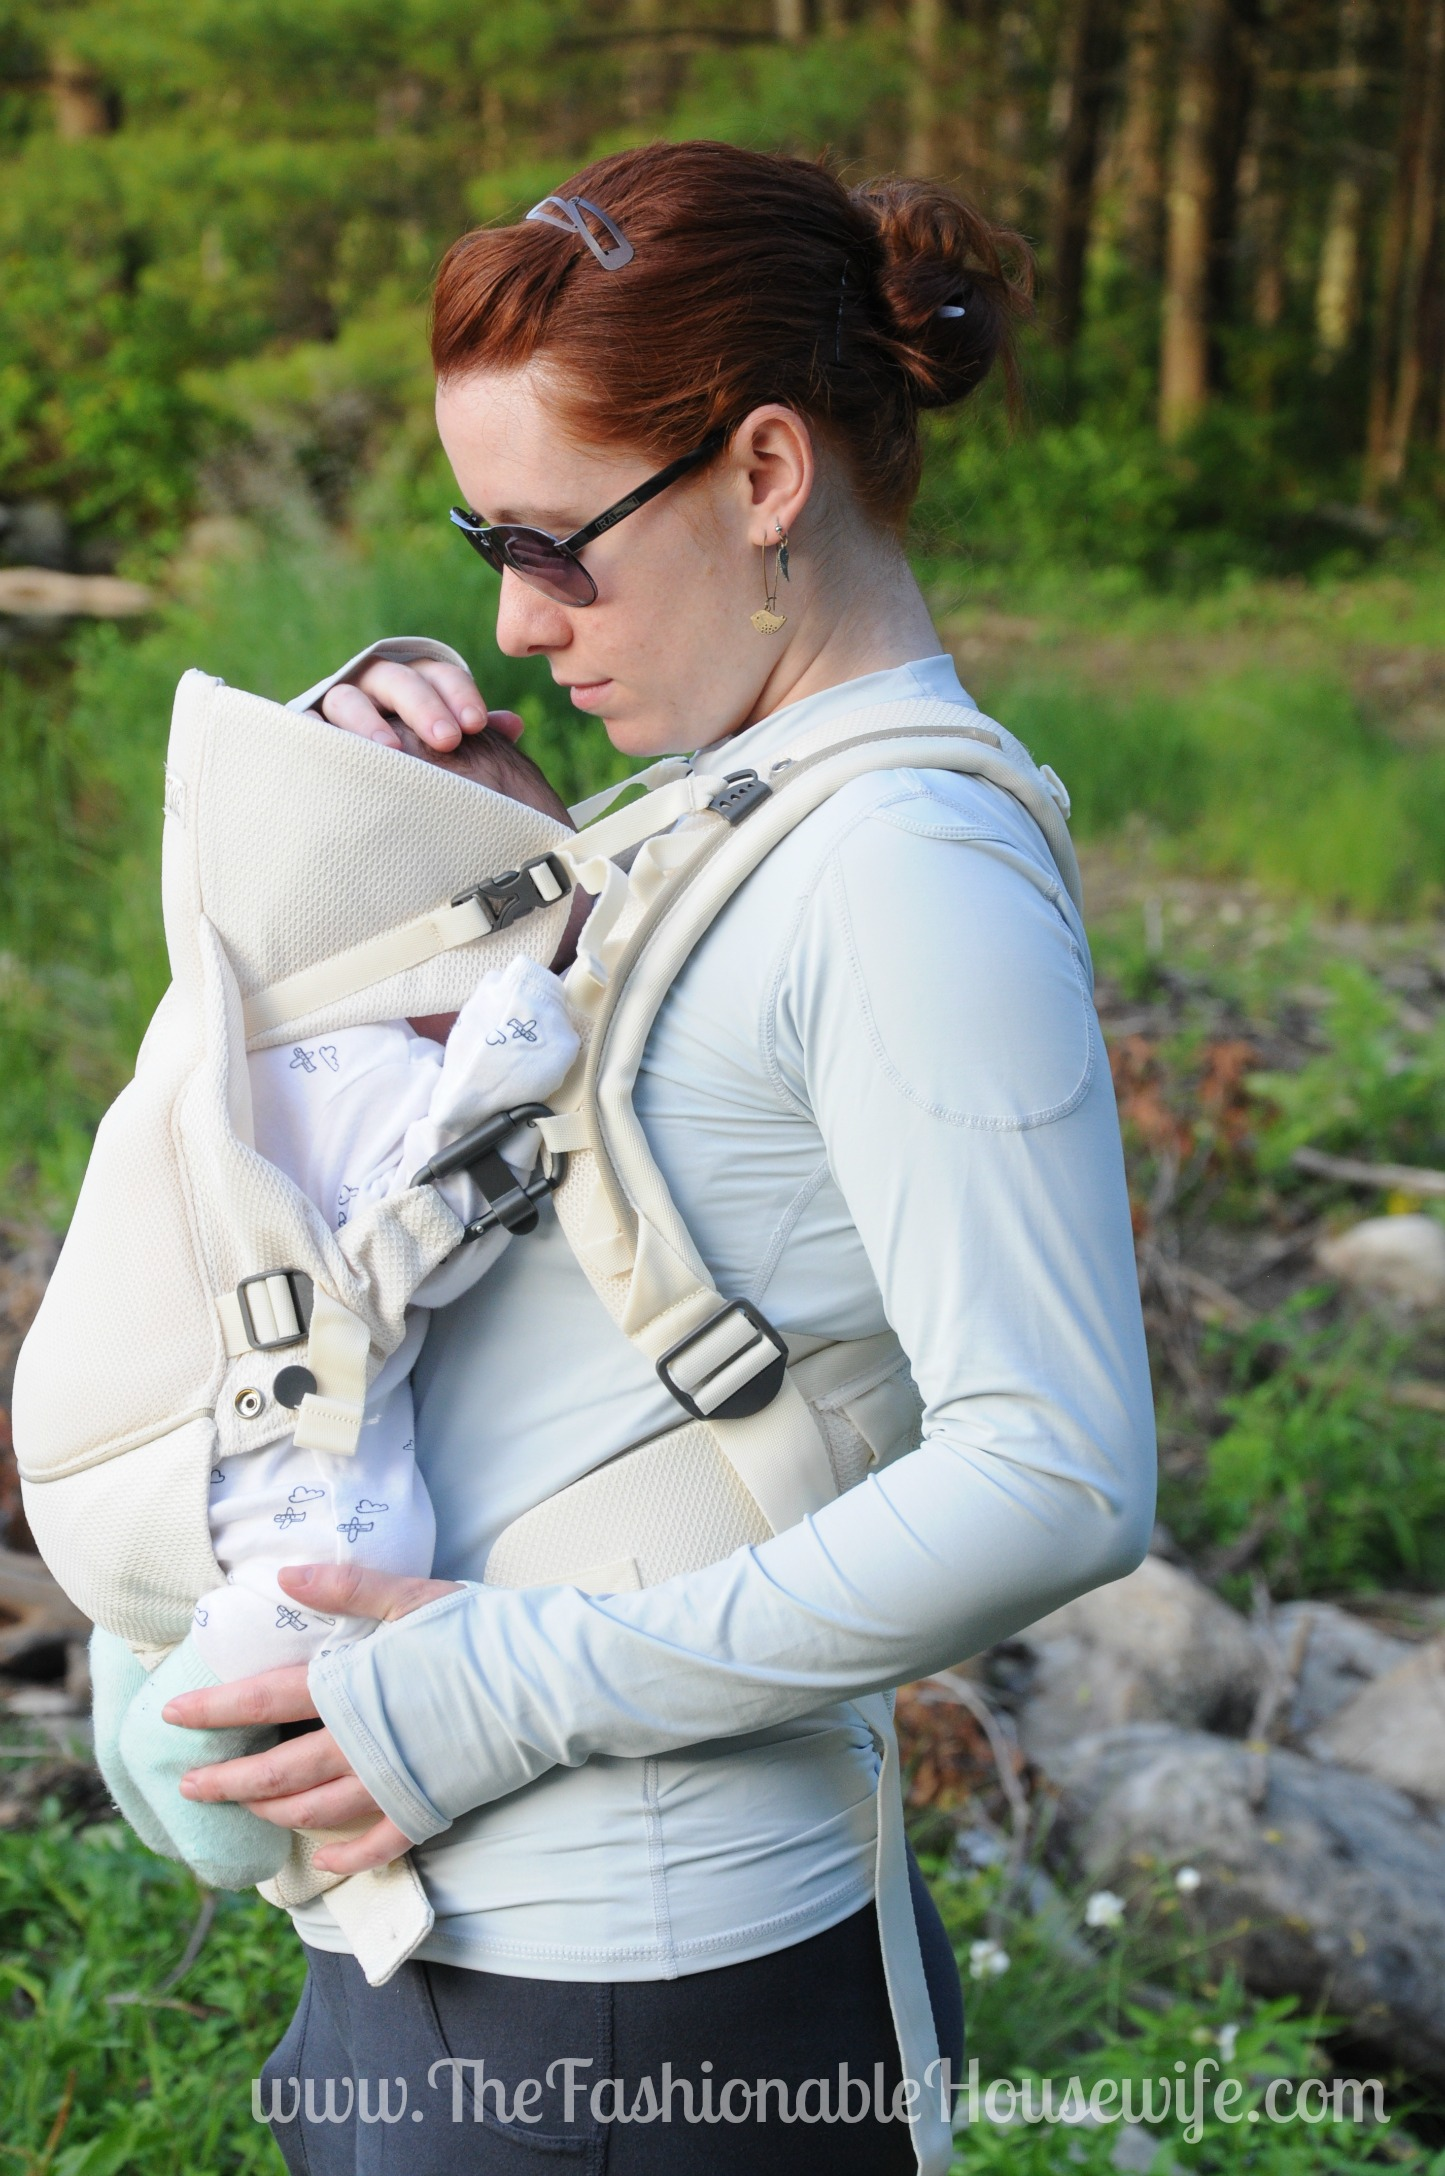 Today S Outfit Stokke Mycarrier Cool Baby Carrier The Fashionable